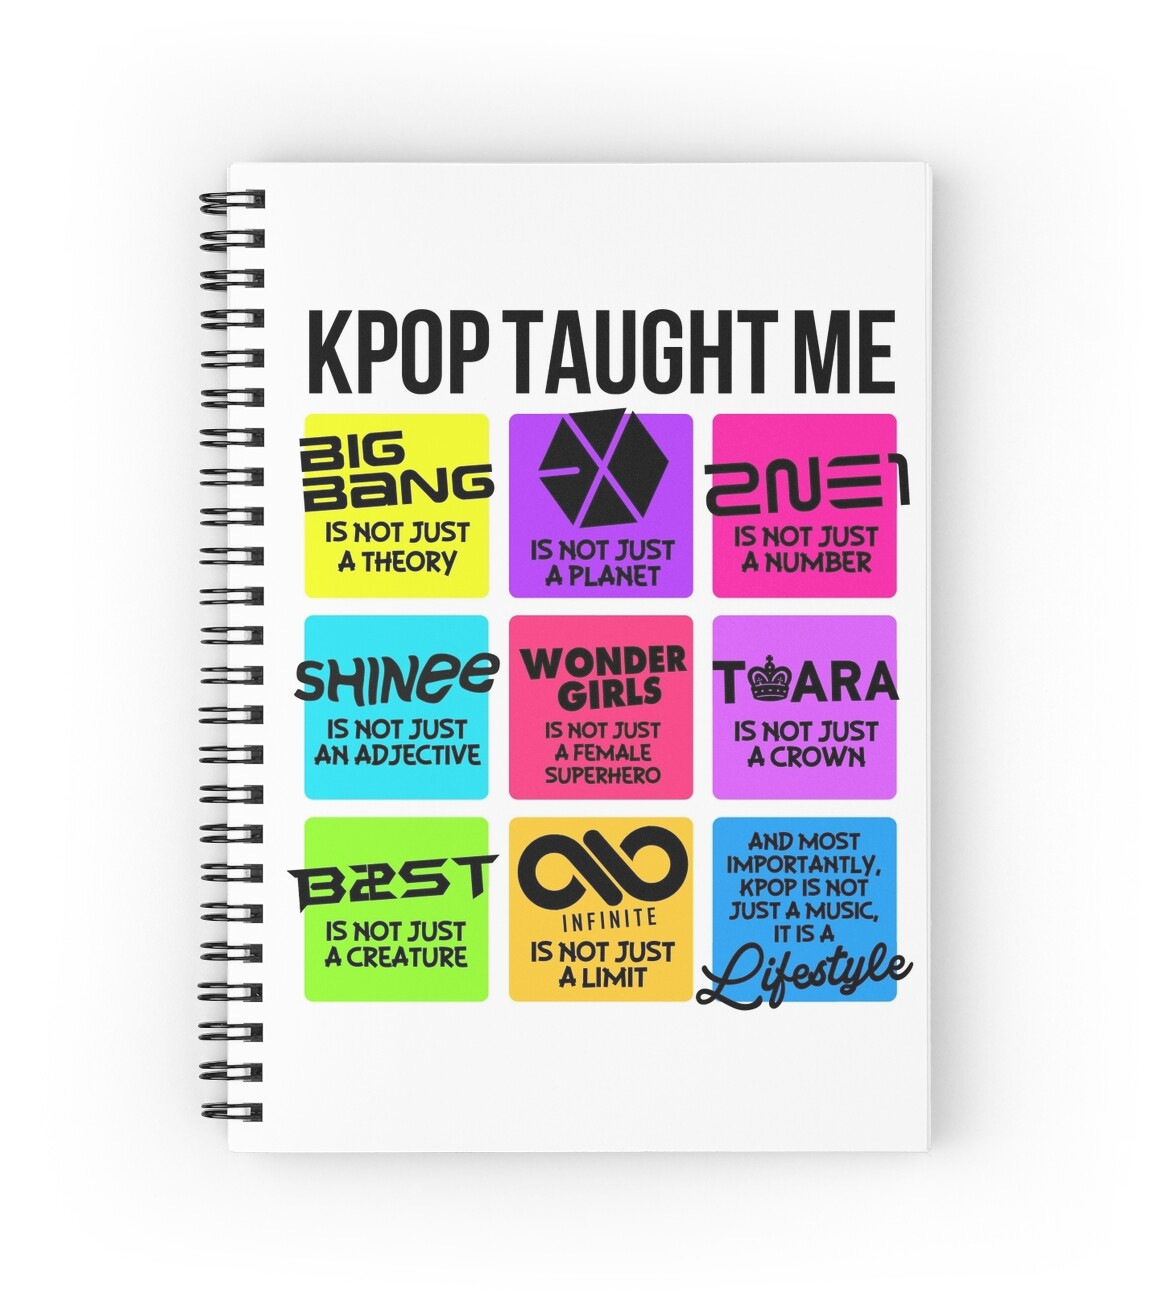 Kpop Taught Spiral Notebooks Skeletonvenus Redbubble